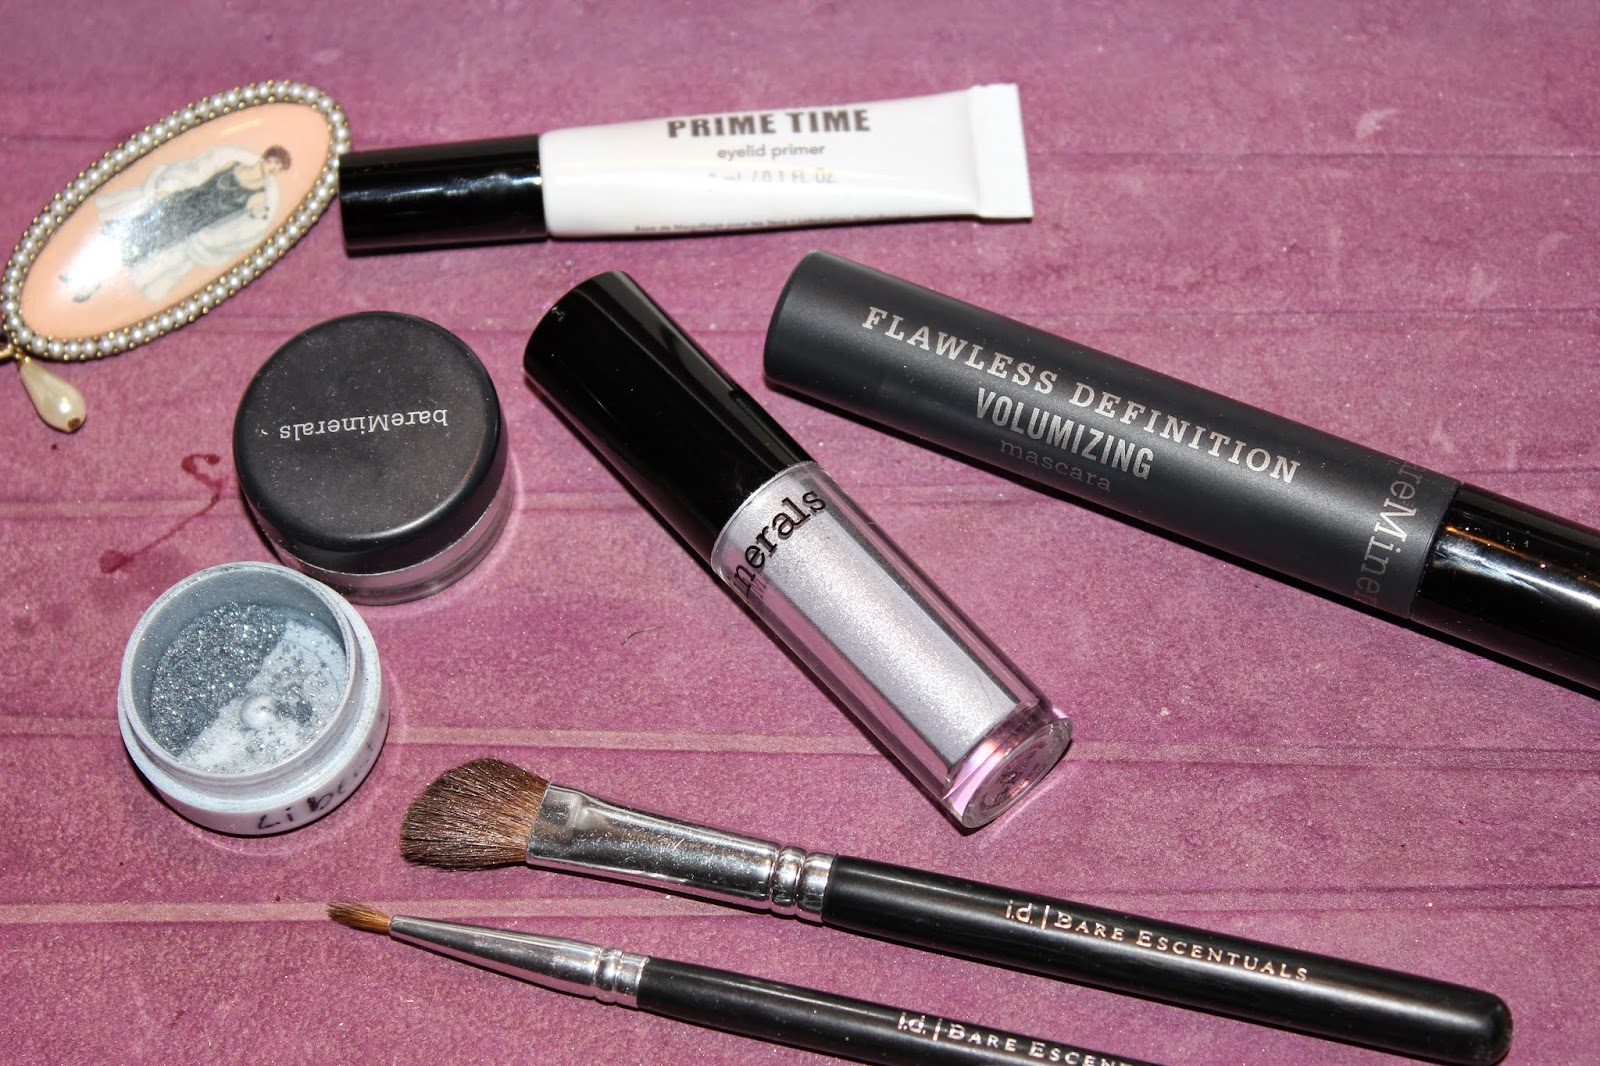 High shine bareMinerals